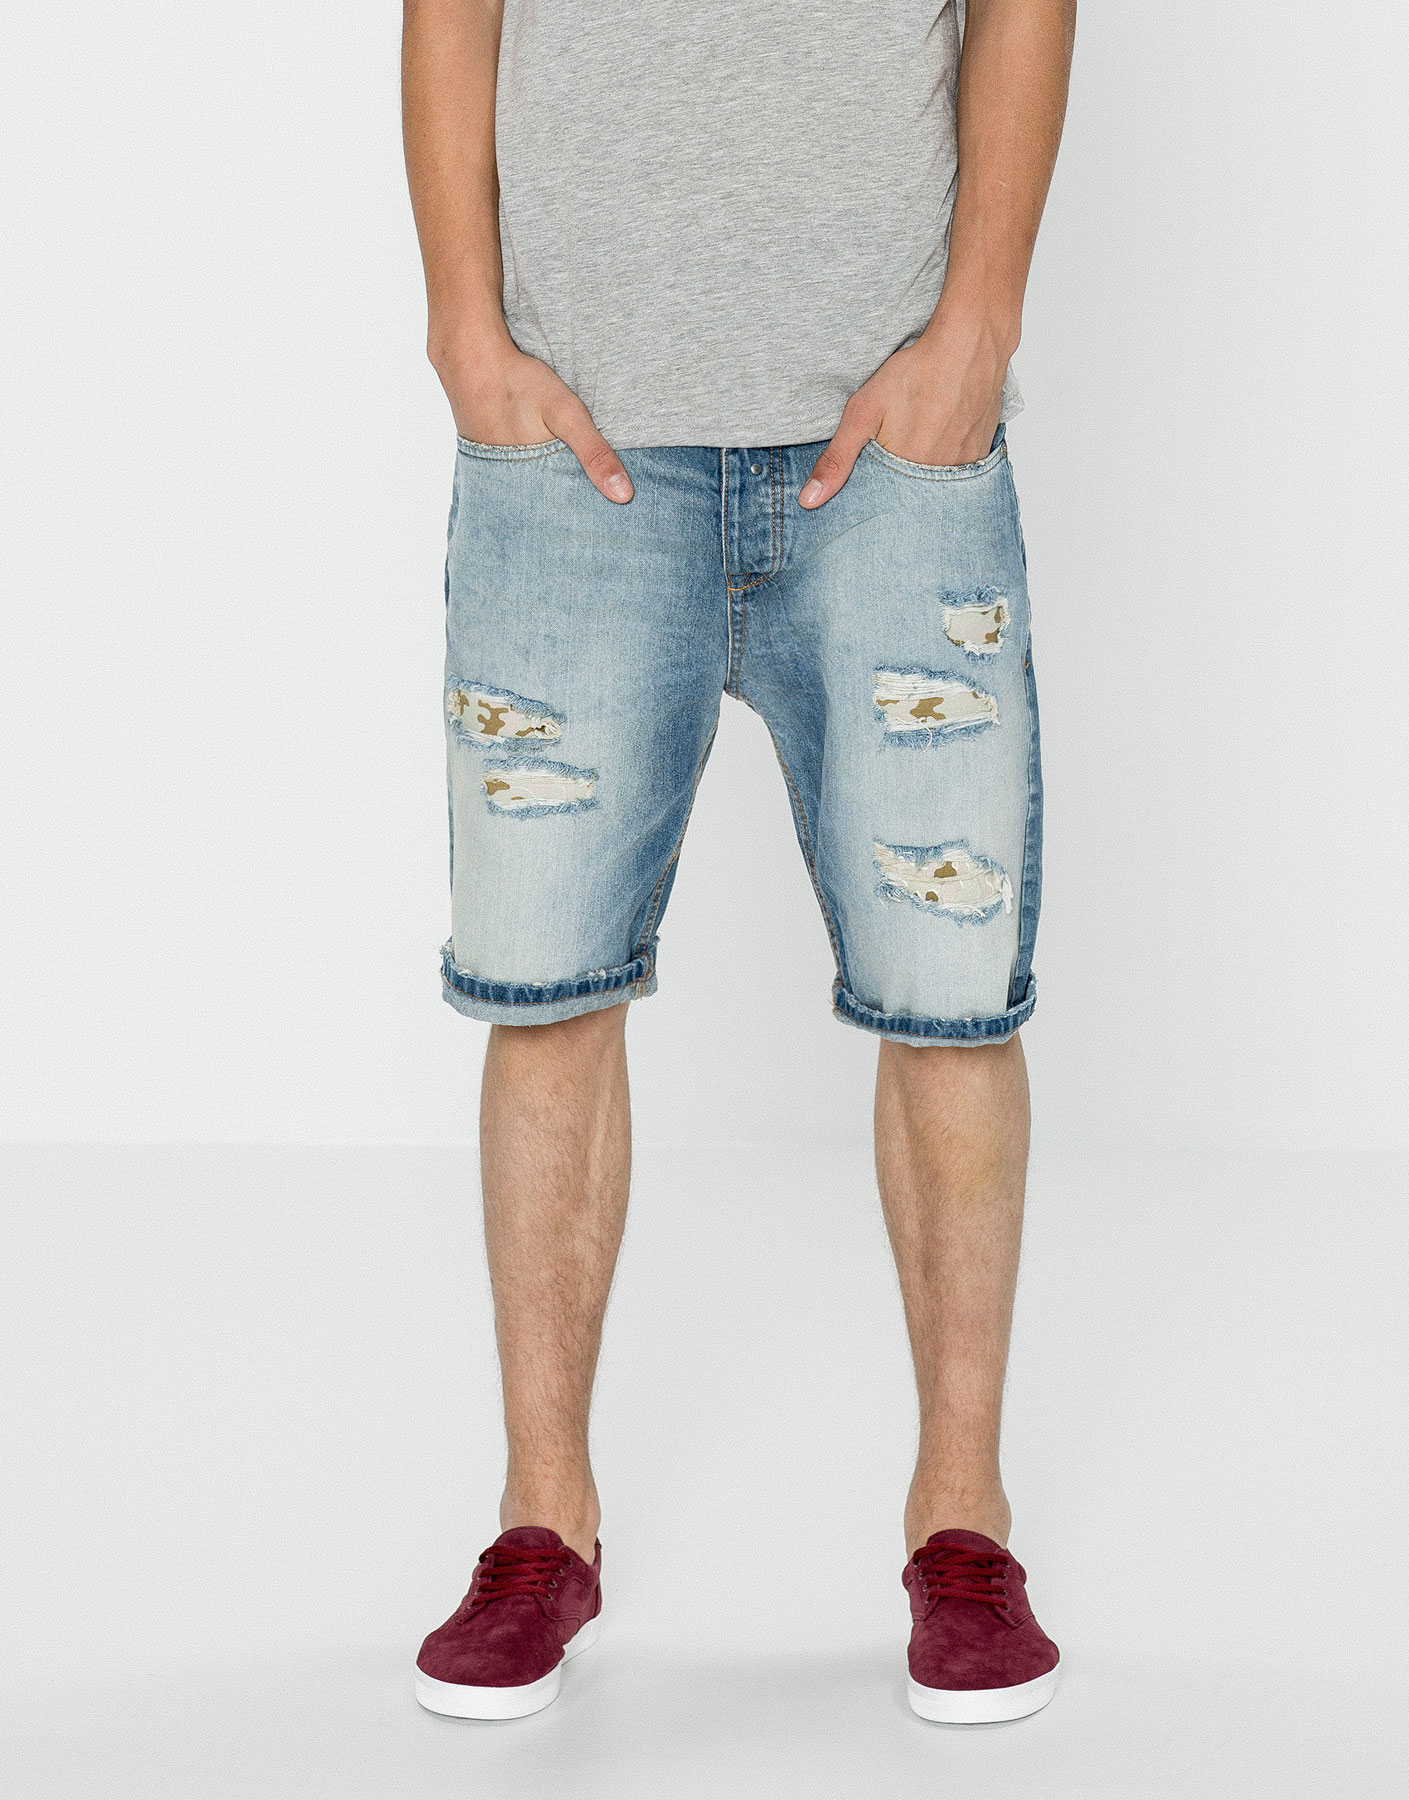 Denim bermuda shorts with camouflage interior